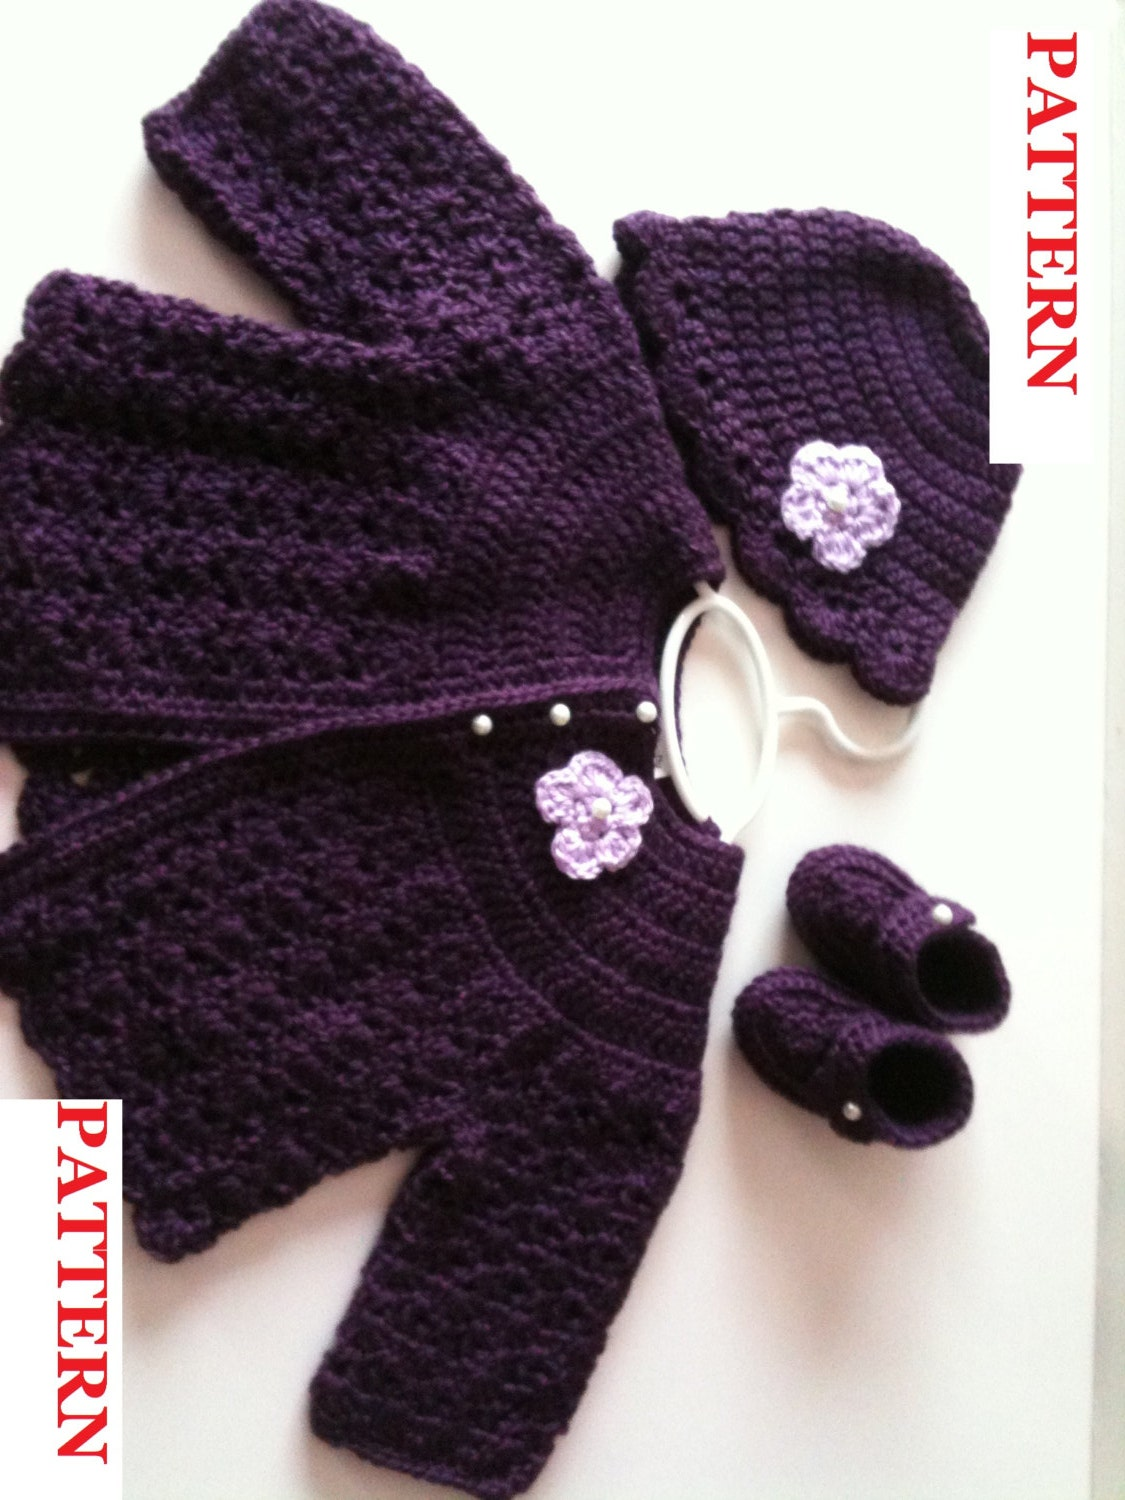 Crochet Pattern: Baby Swing Style Sweater Set GC 105